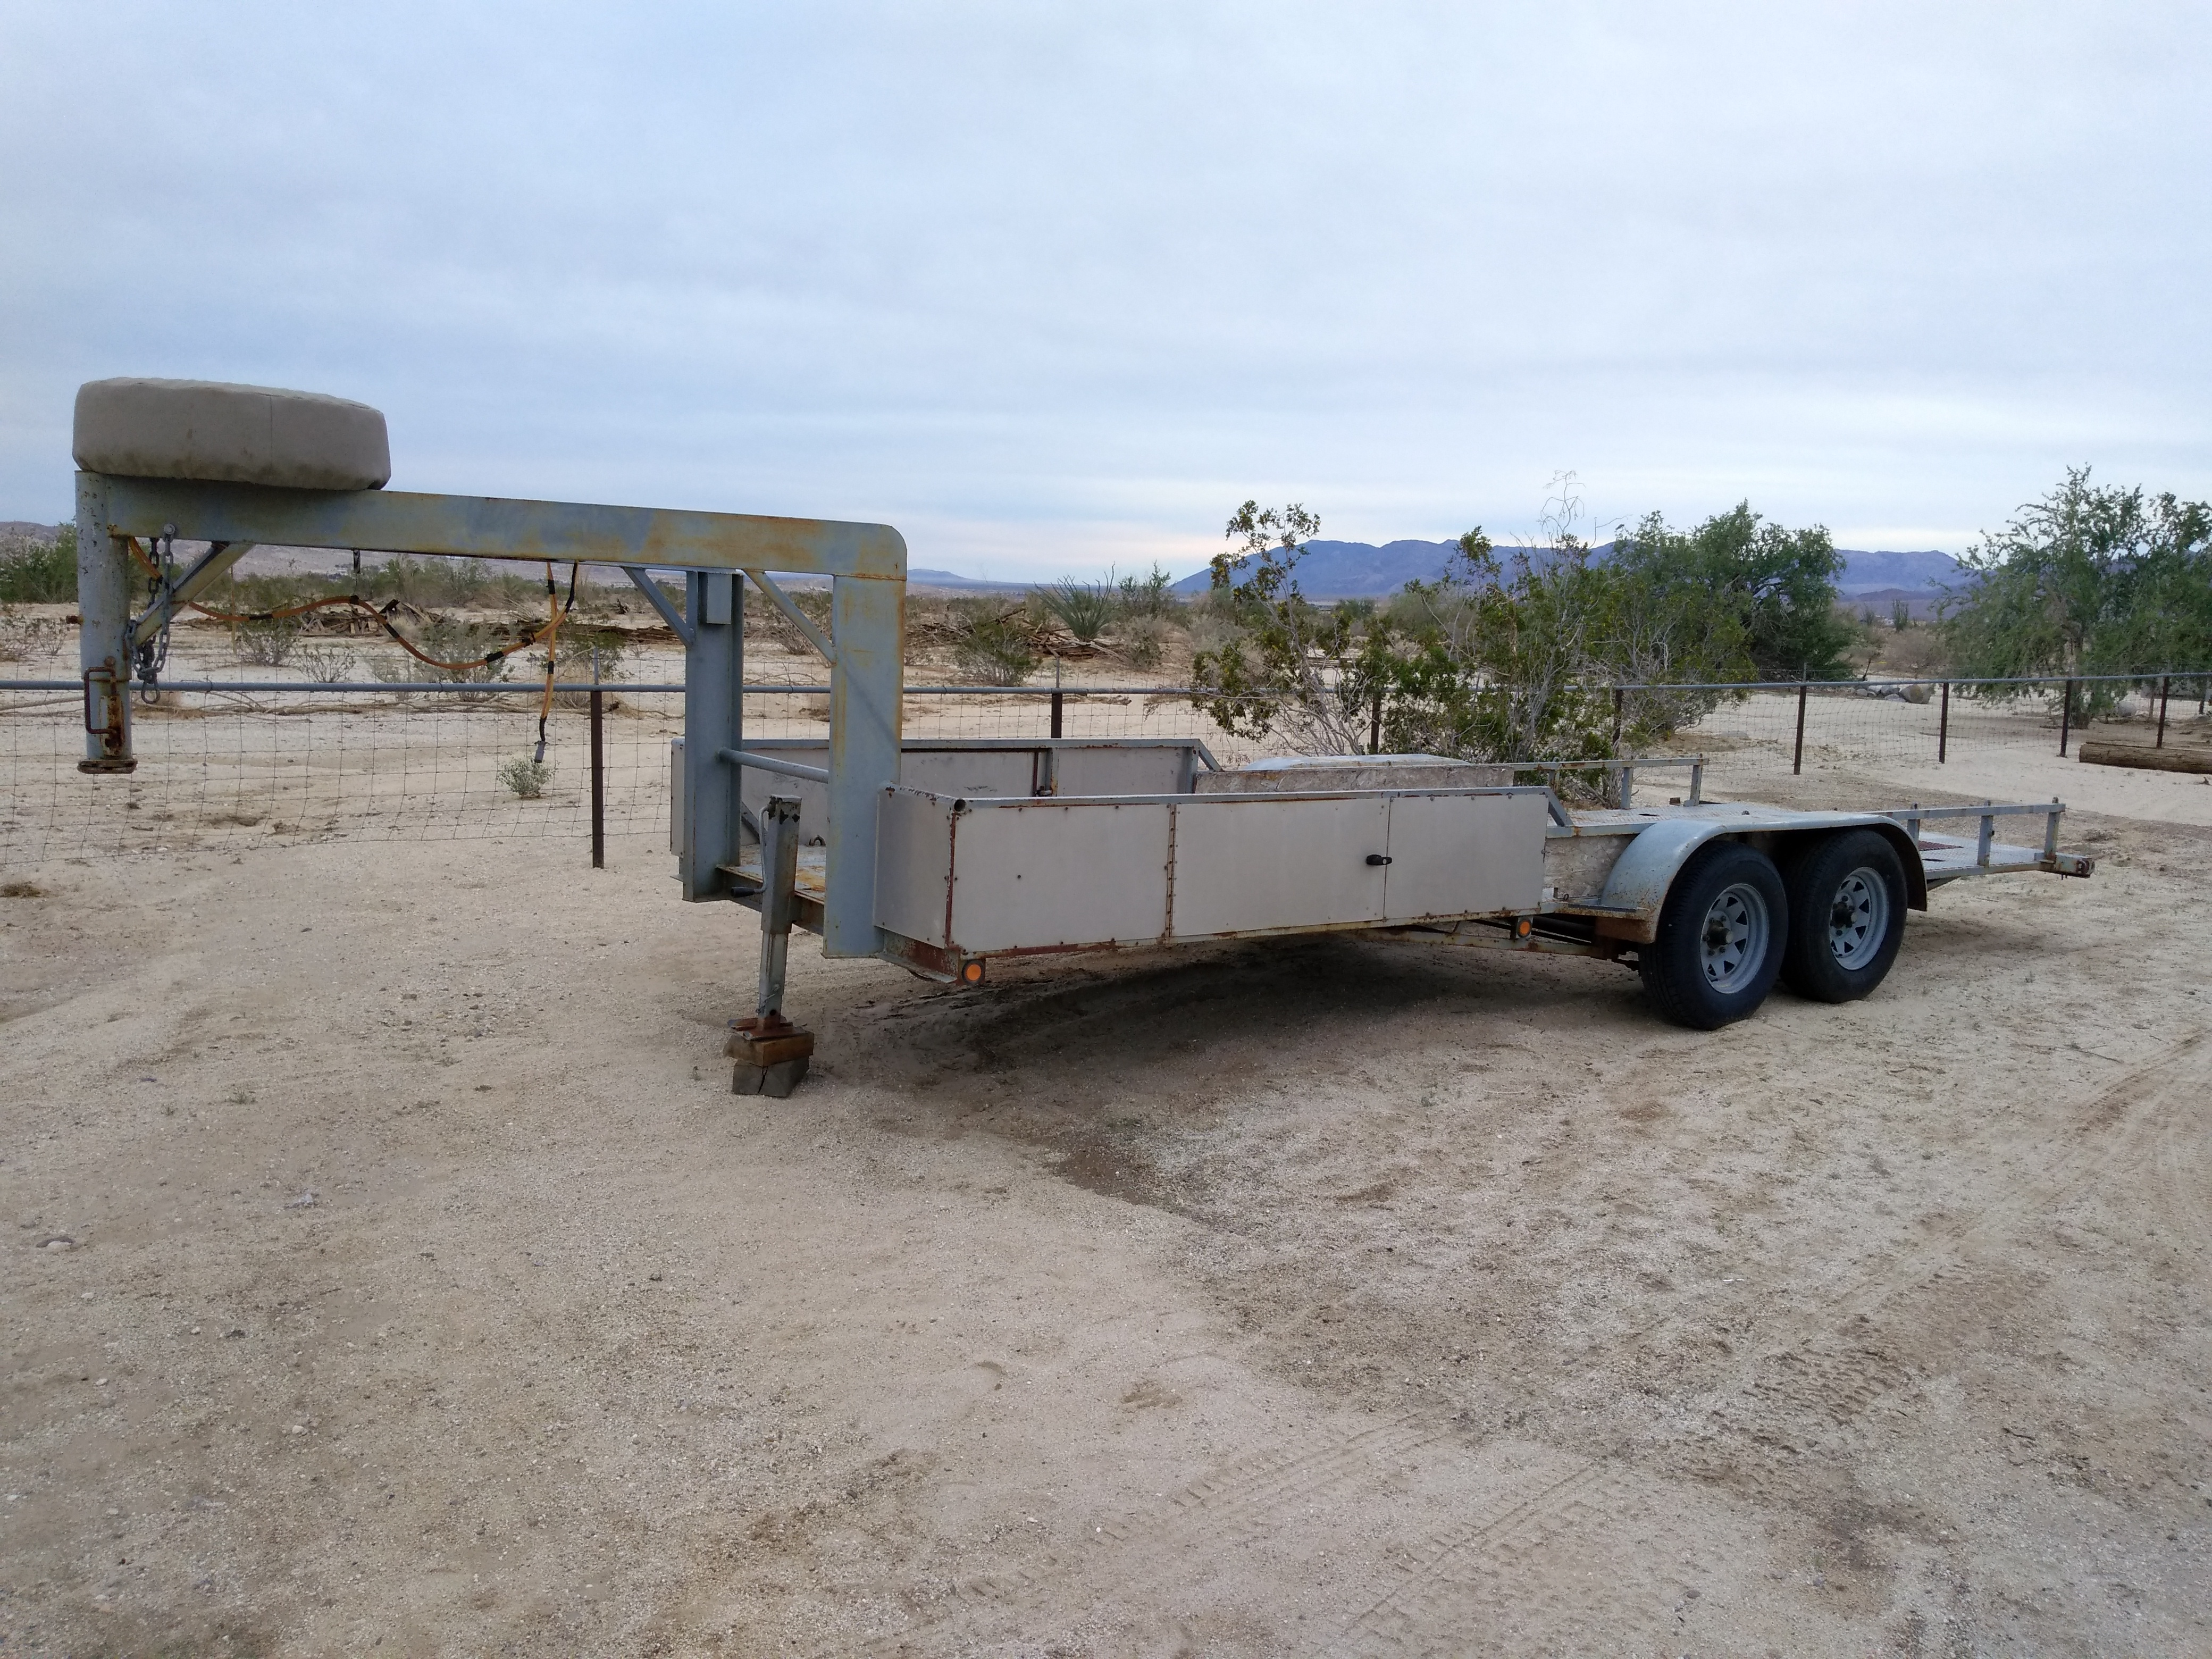 Classified Ads Ss Off Road Magazine Trailer Light Wiring Harness 4 Flat 25ft To Redo Lights Will Sell Both For 6500 Obo Call 435 640 2514 Located In Ocotillo Wells Posted 12 20 18 Gooseneck Bed